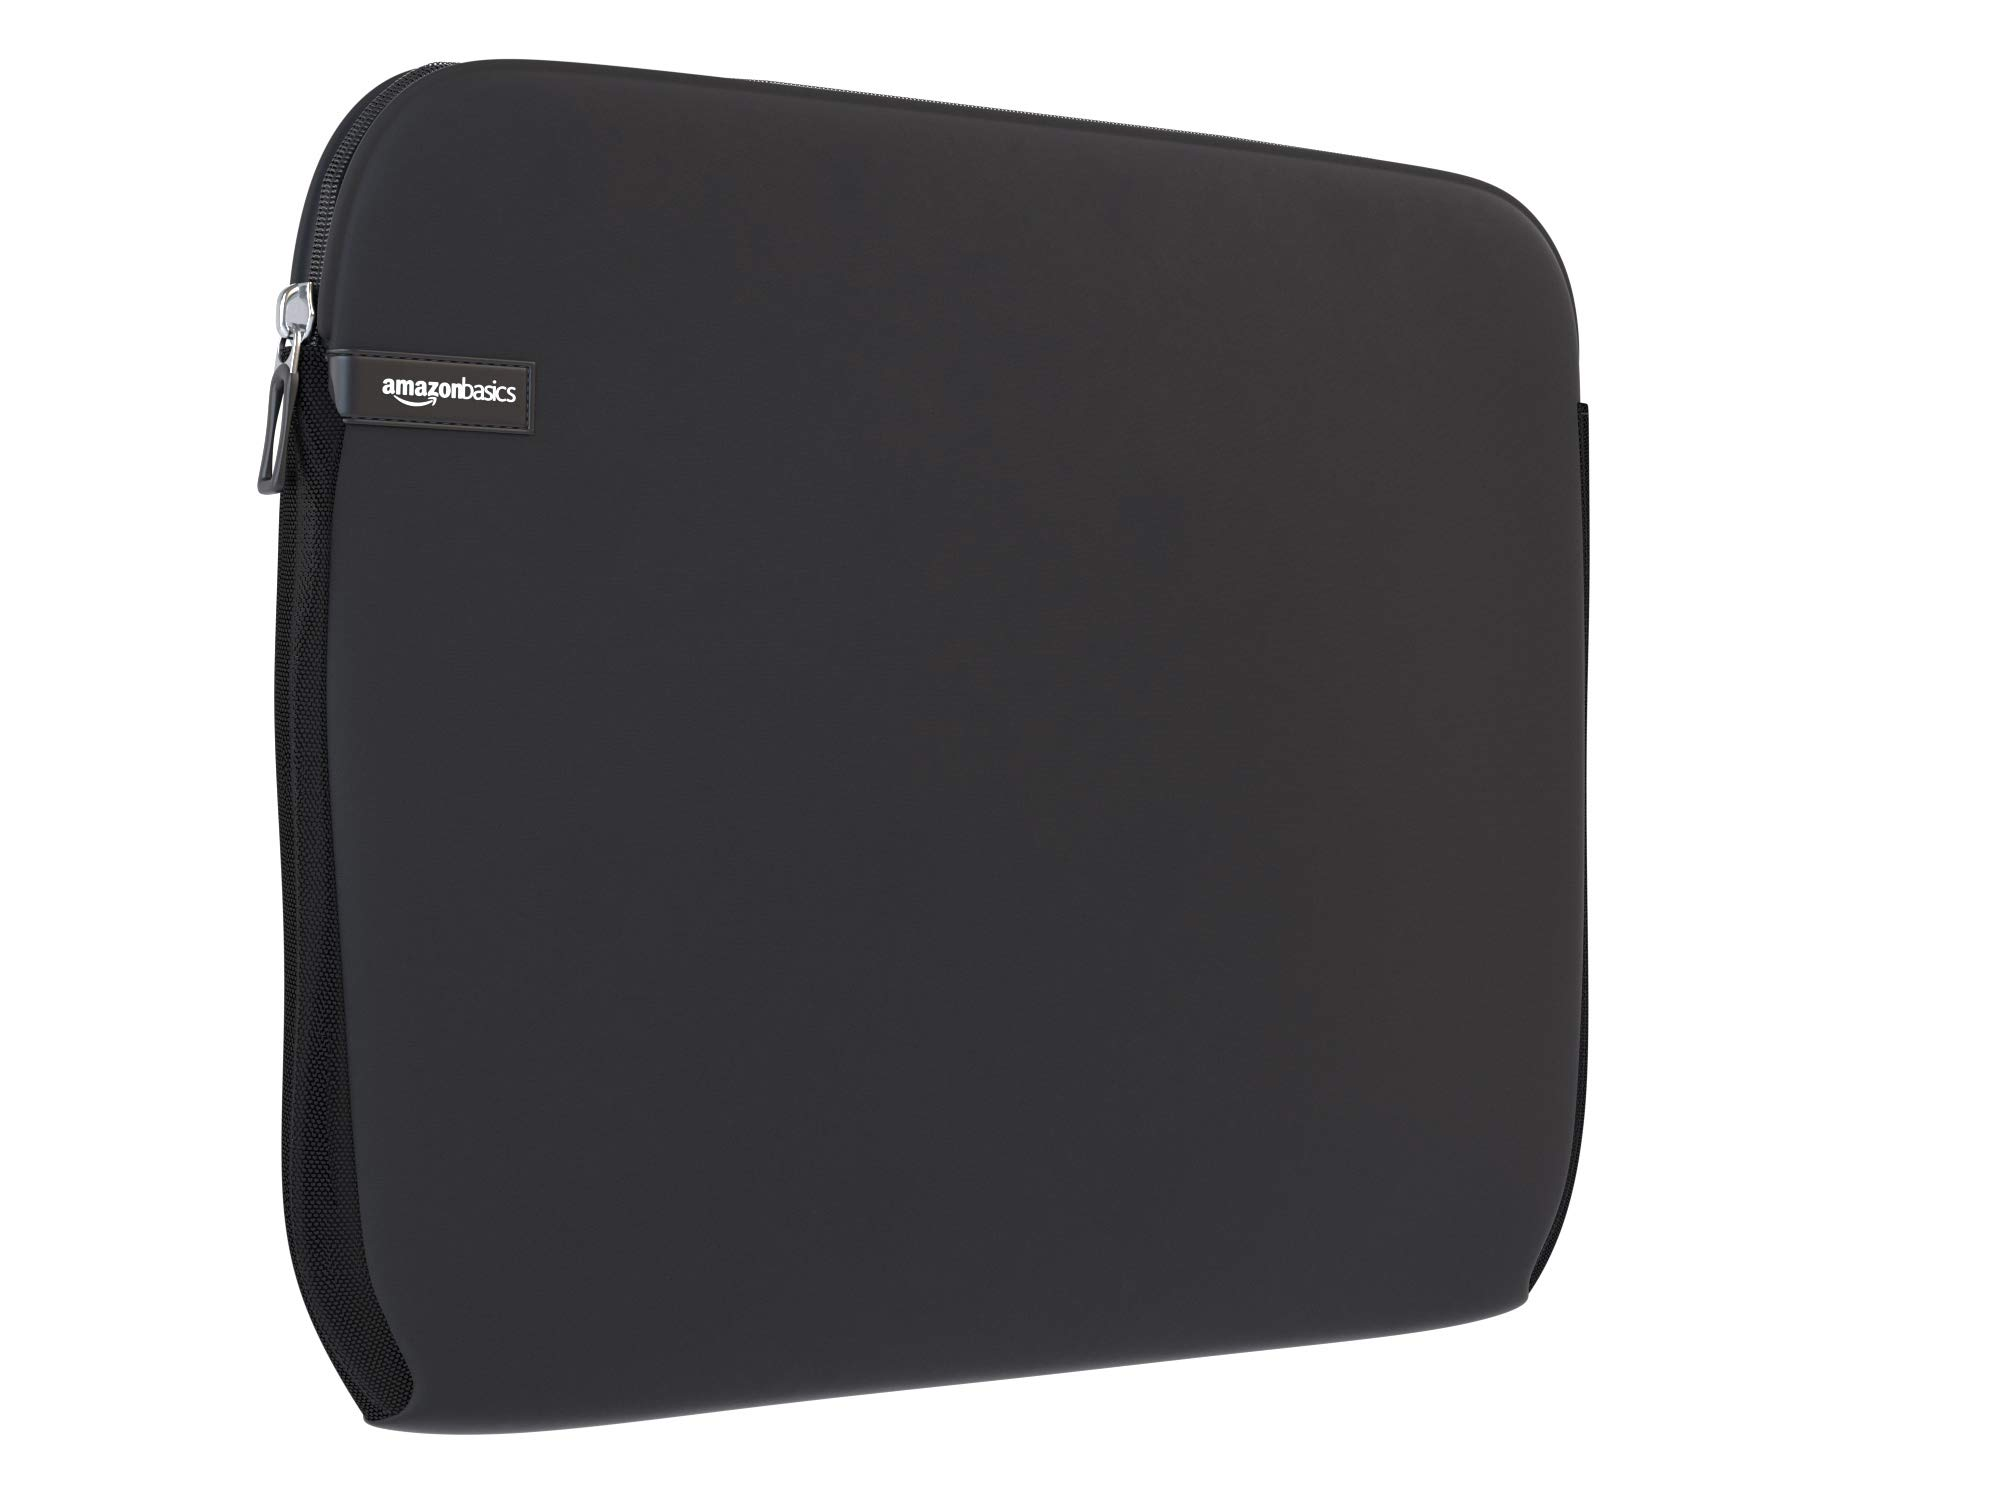 AmazonBasics 13.3-Inch Laptop Macbook Sleeve Case - Black by AmazonBasics